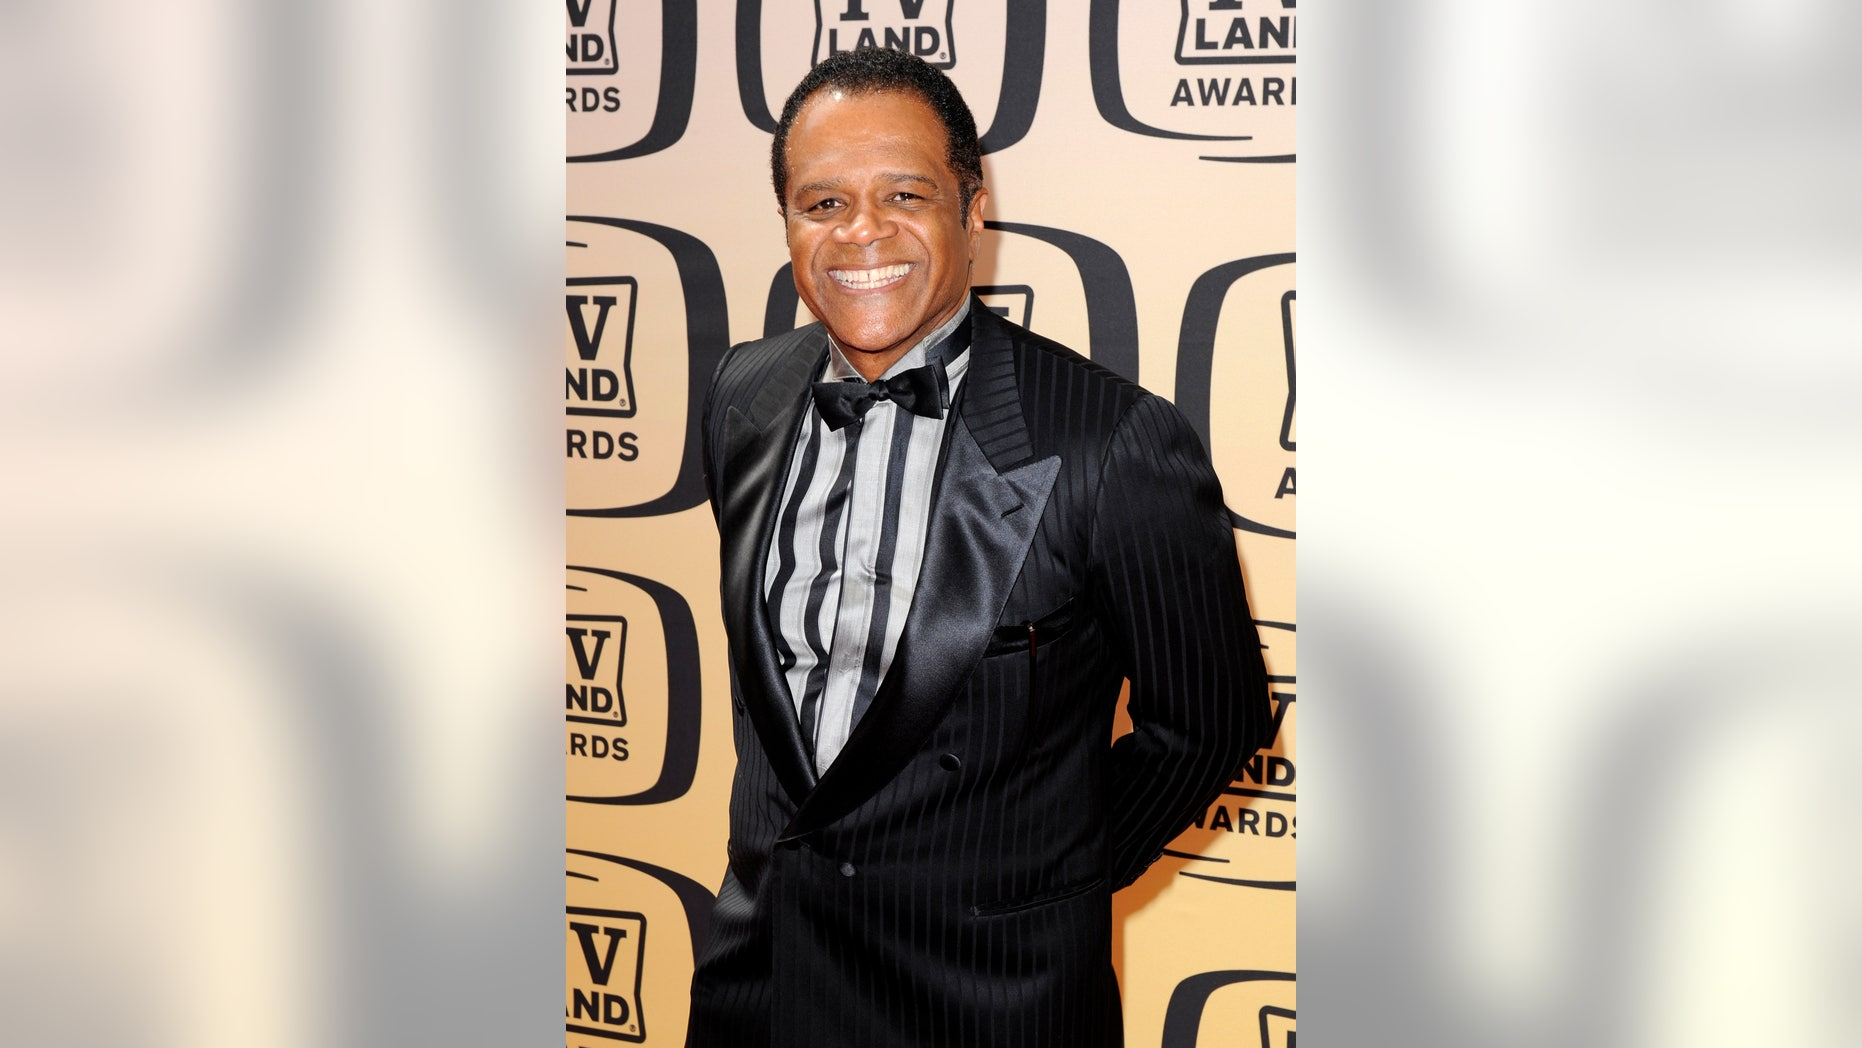 Actor Ted Lange arrives at the 8th Annual TV Land Awards in Los Angeles, California April 17, 2010. REUTERS/Gus Ruelas (UNITED STATES - Tags: ENTERTAINMENT) - RTR2CY9N